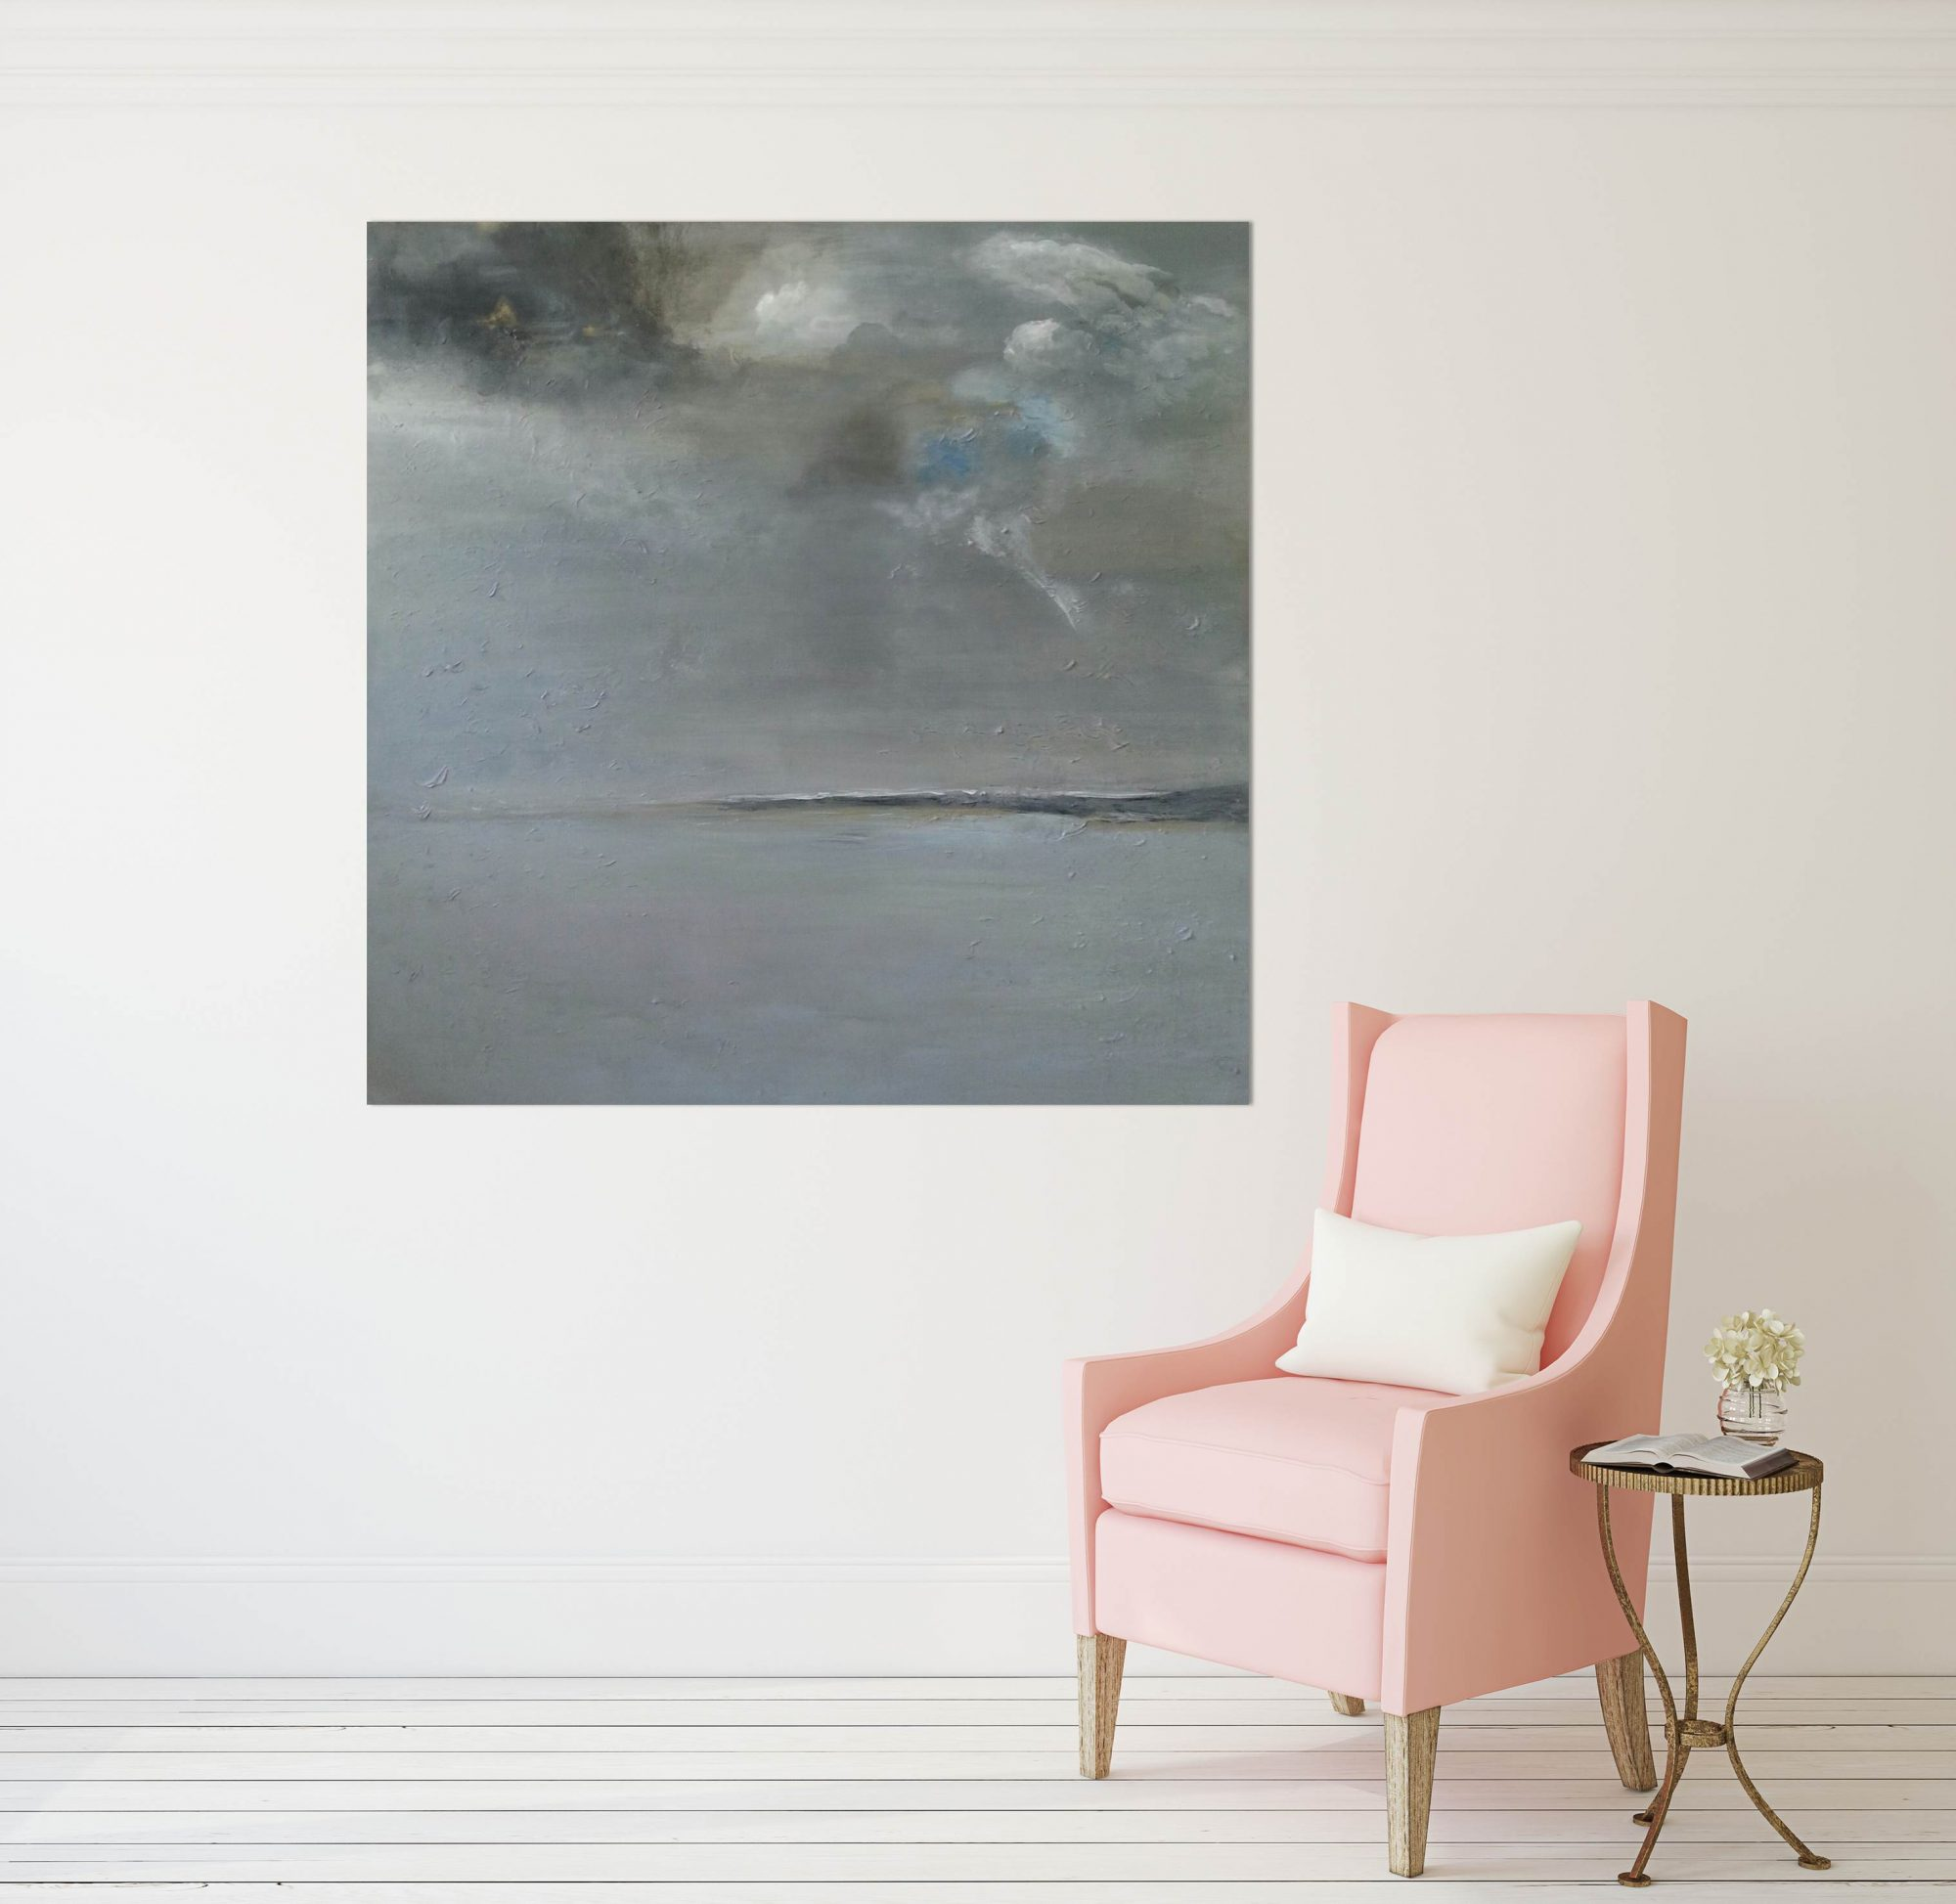 stormy-bay-with-pink-chair